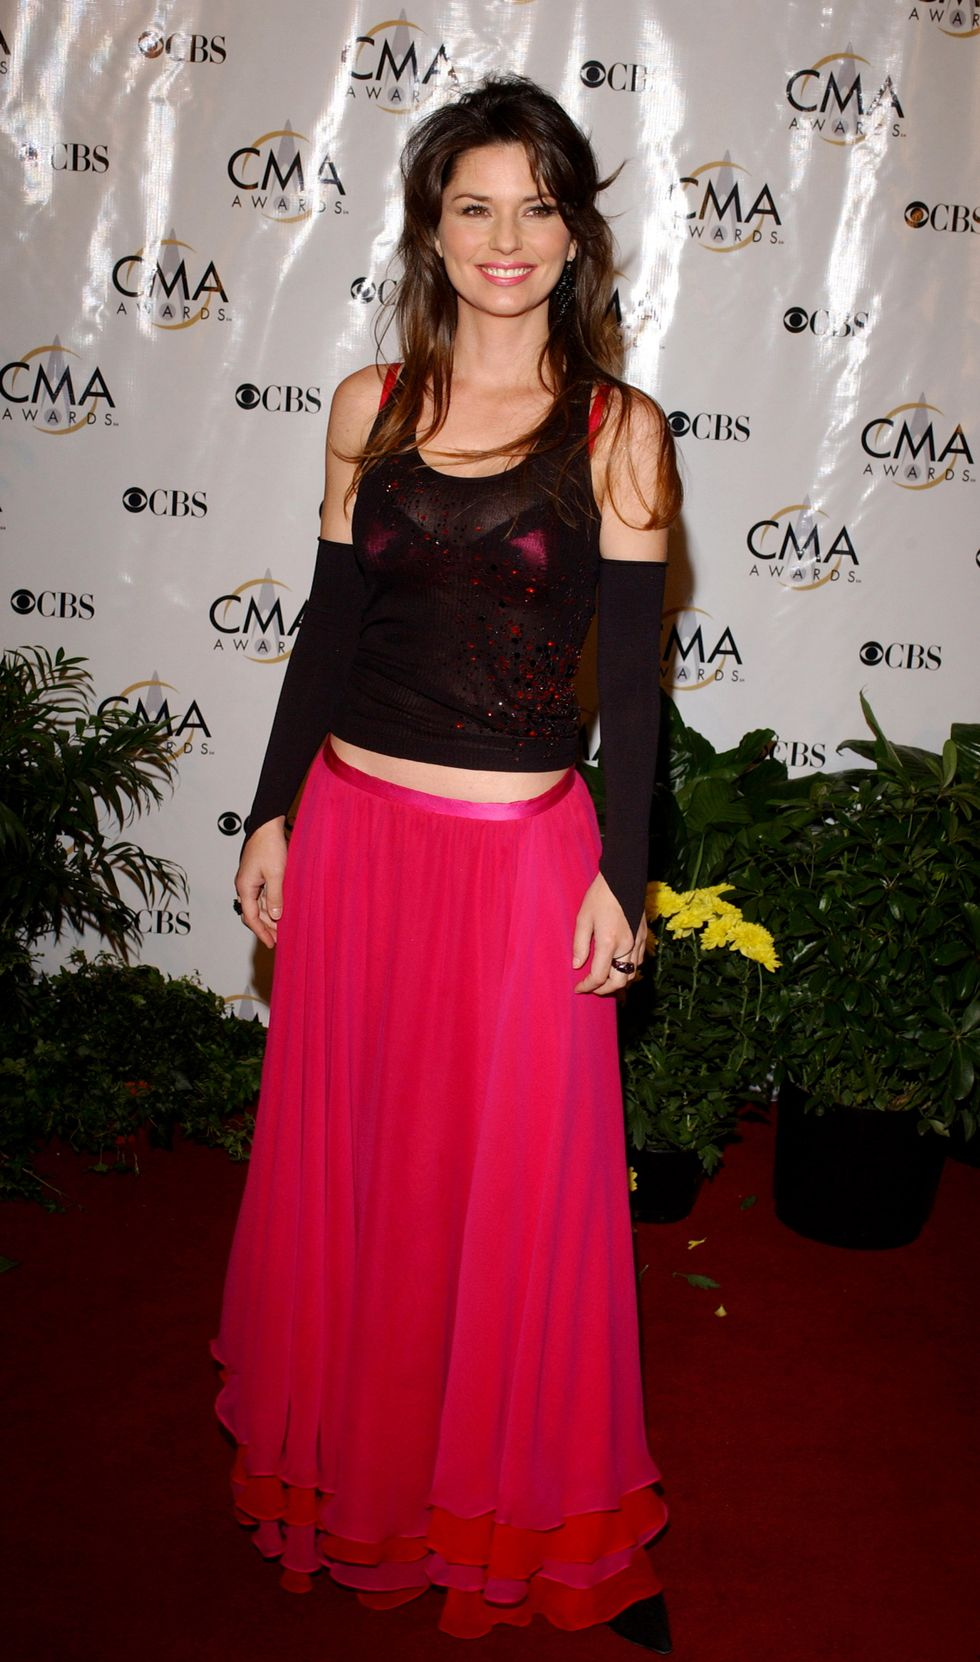 Shania Twain during 38th Annual Country Music Awards - Arrivals at Grand Ole Opry House in Nashville, Tennessee, United States. (Photo by Todd Williamson/FilmMagic)